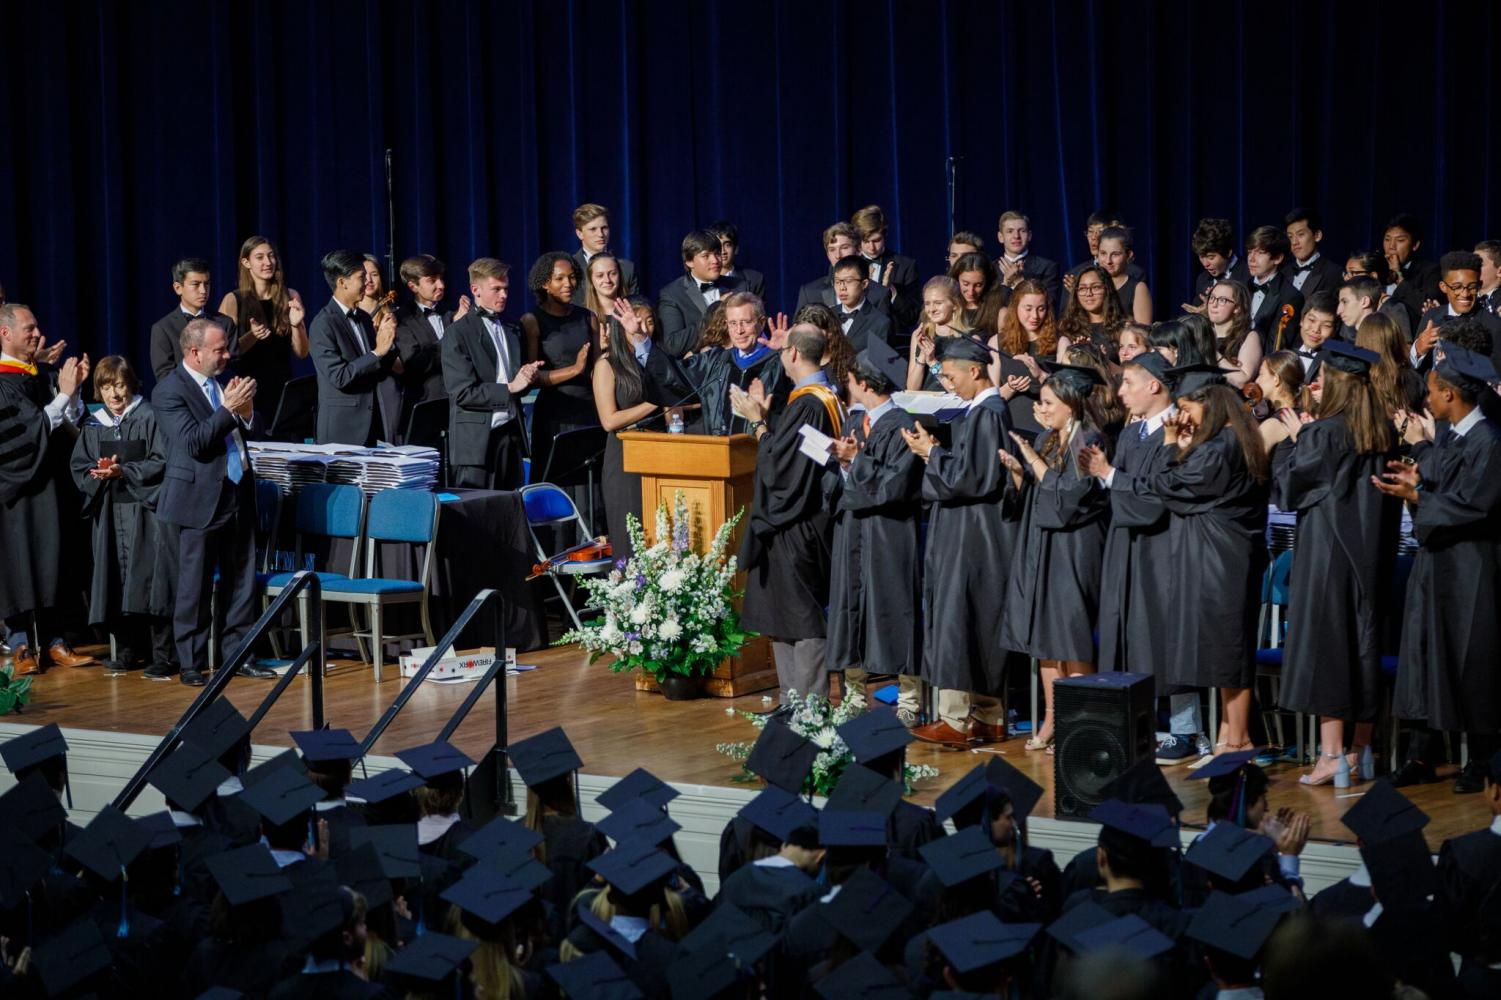 The audience at  graduation June 8 gives principal Alan Goodwin a standing ovation during his address to the class. This graduation was Goodwin's final as principal, as he retires June 30. Robert Dodd will assume the principal role starting July 1. Photo by Adam Hirsh.